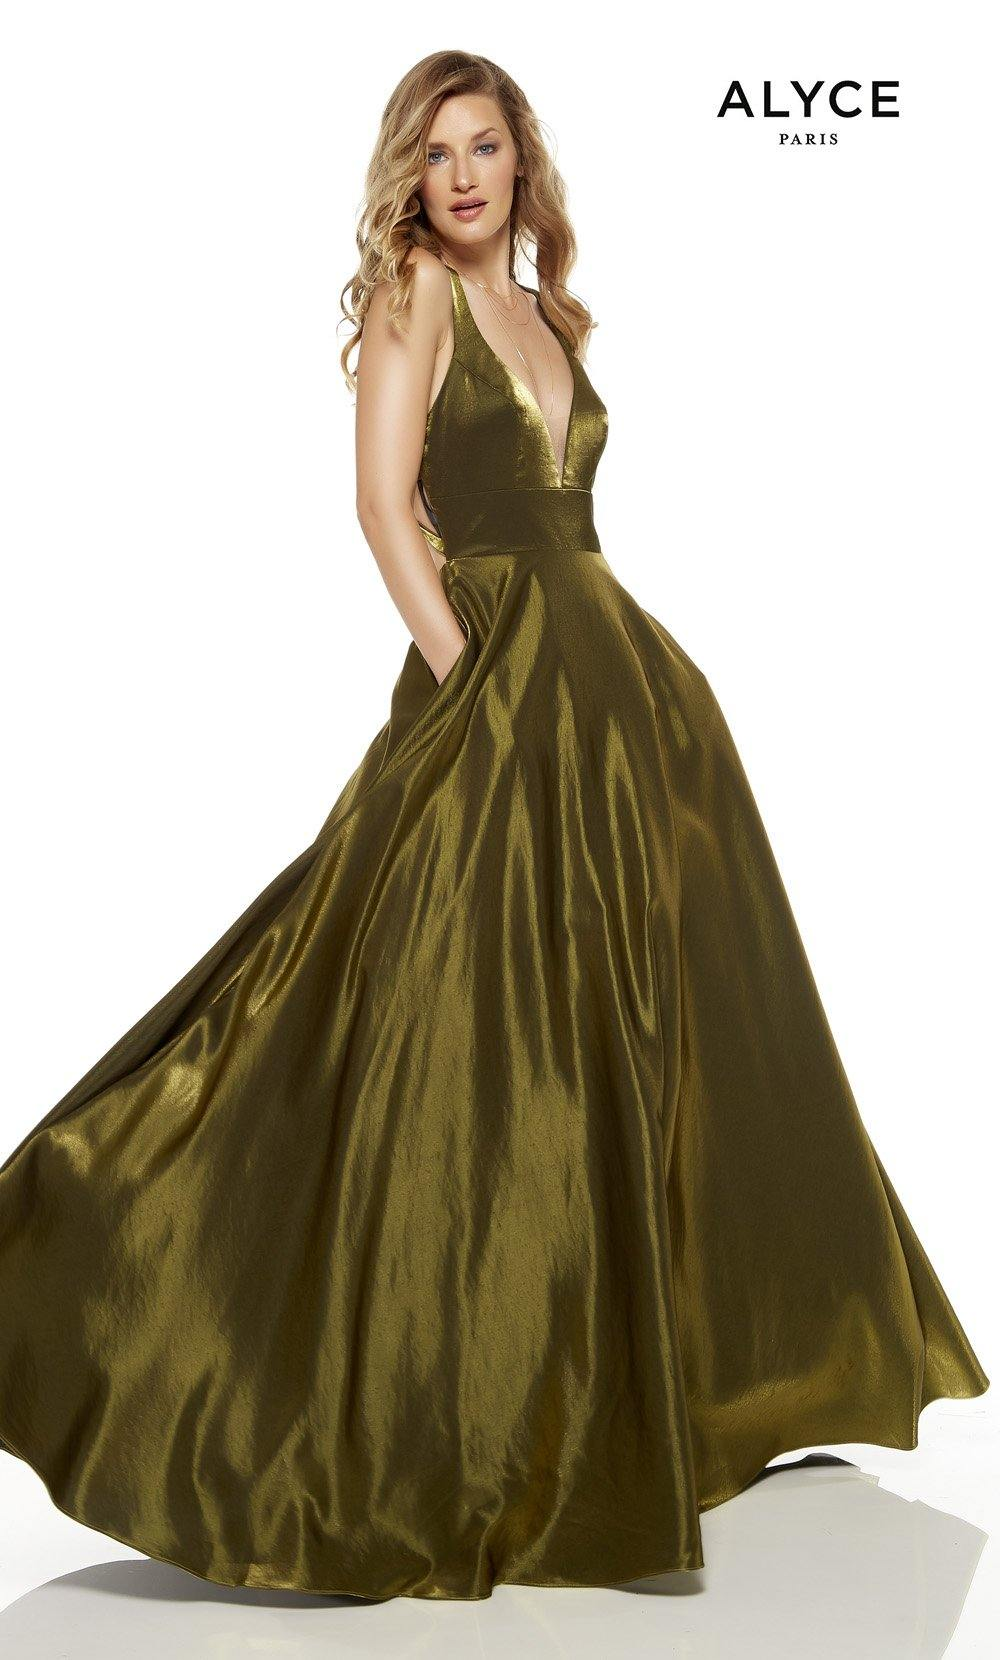 Olive Green red-carpet gown with pockets and a plunging neckline